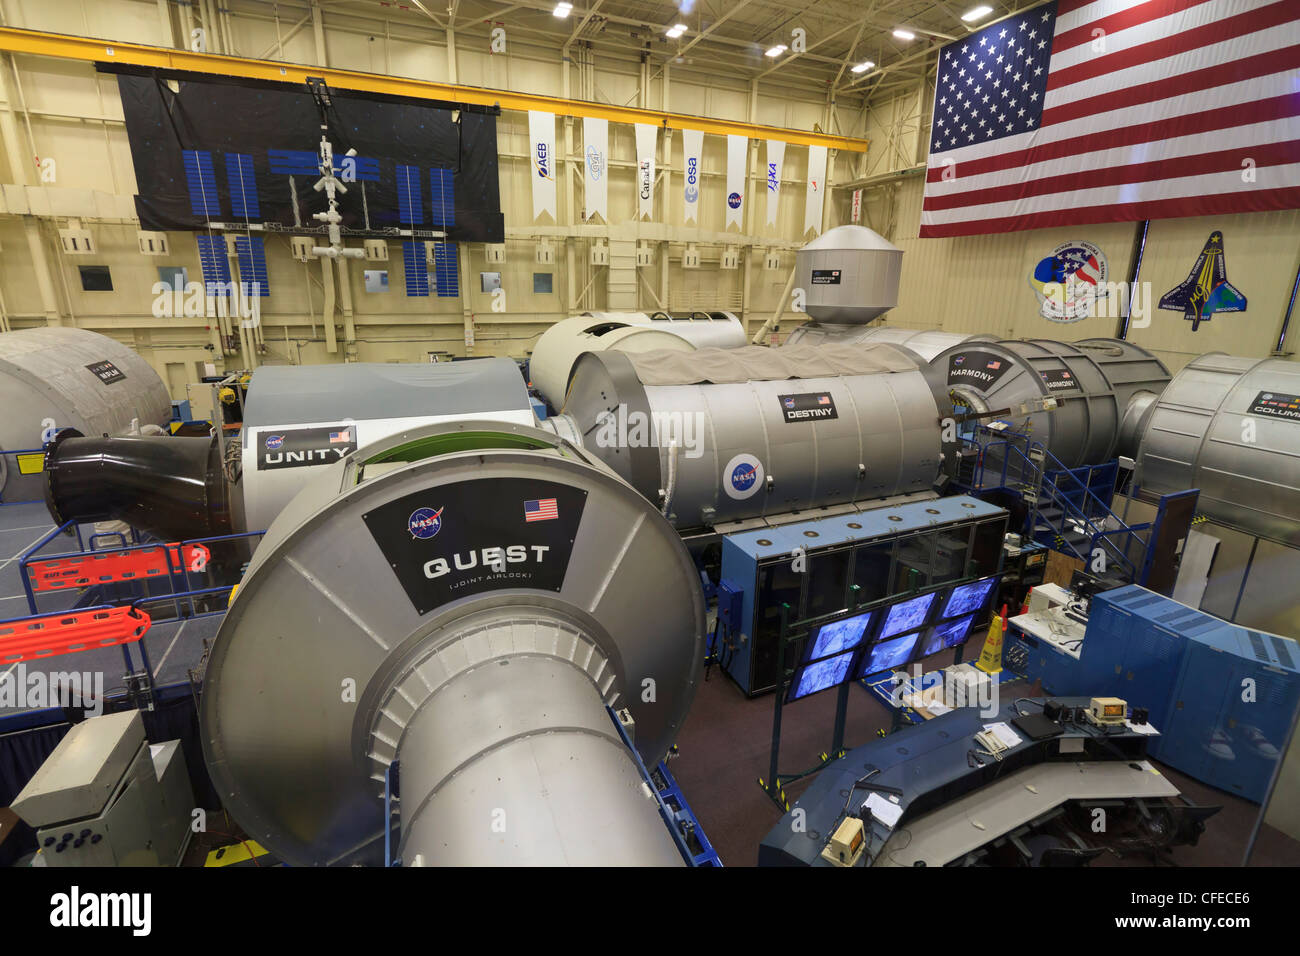 Full scale replica of the International Space Station at the Space Vehicle Mockup Facility, Johnson Space Center, - Stock Image